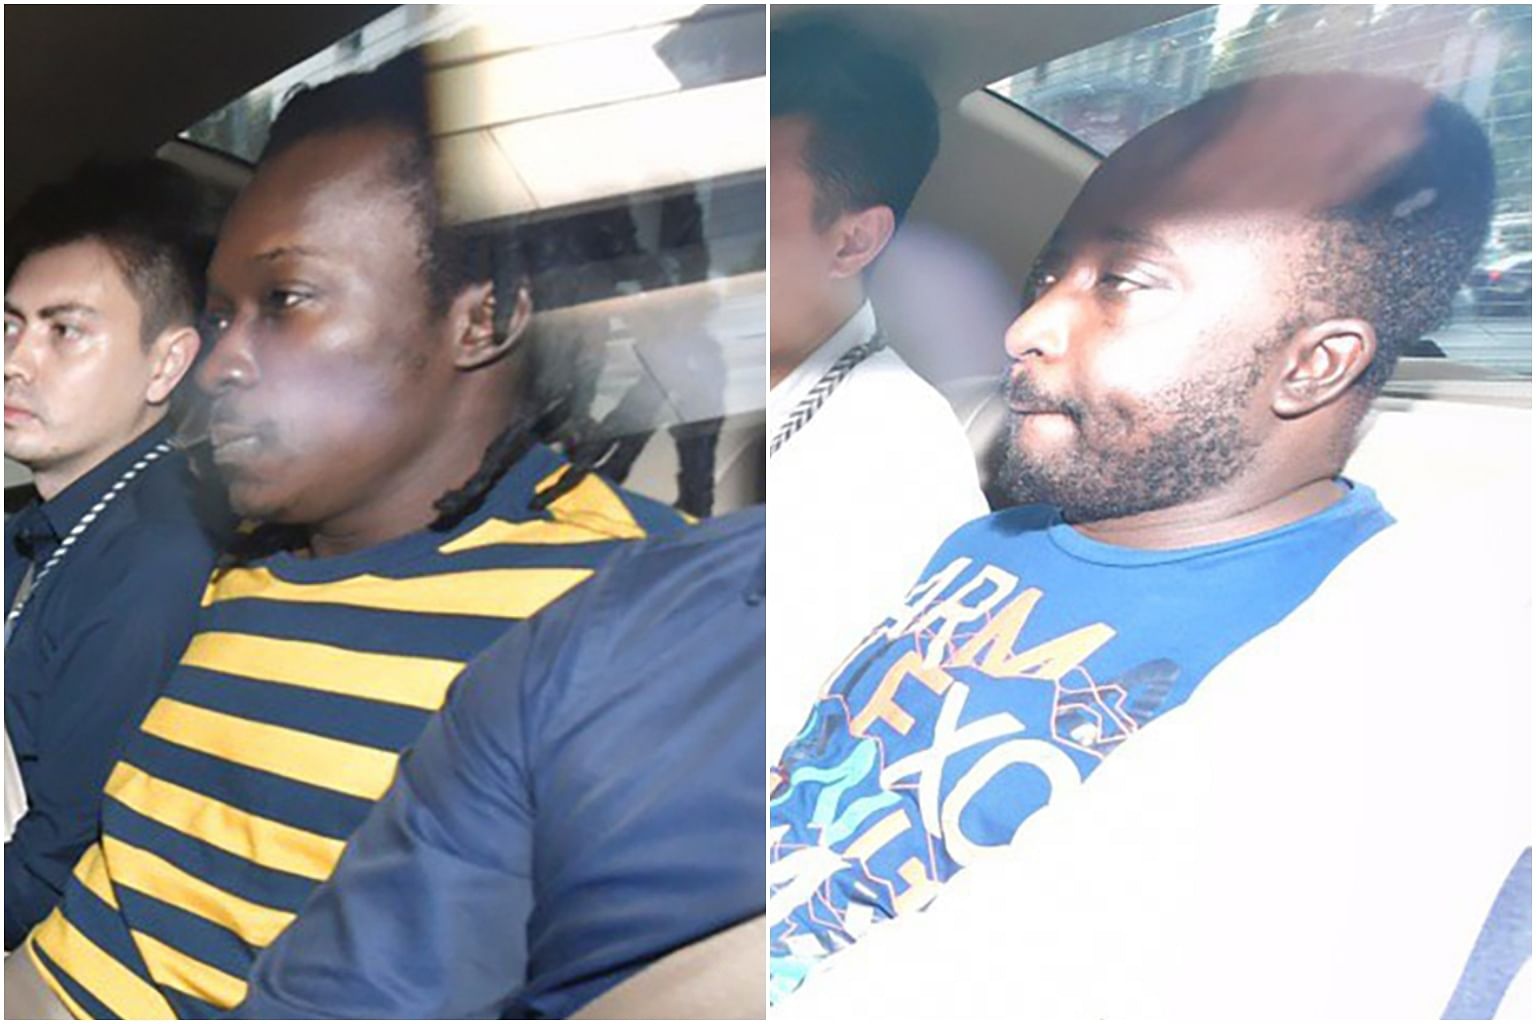 Photos of nigerian male scammers